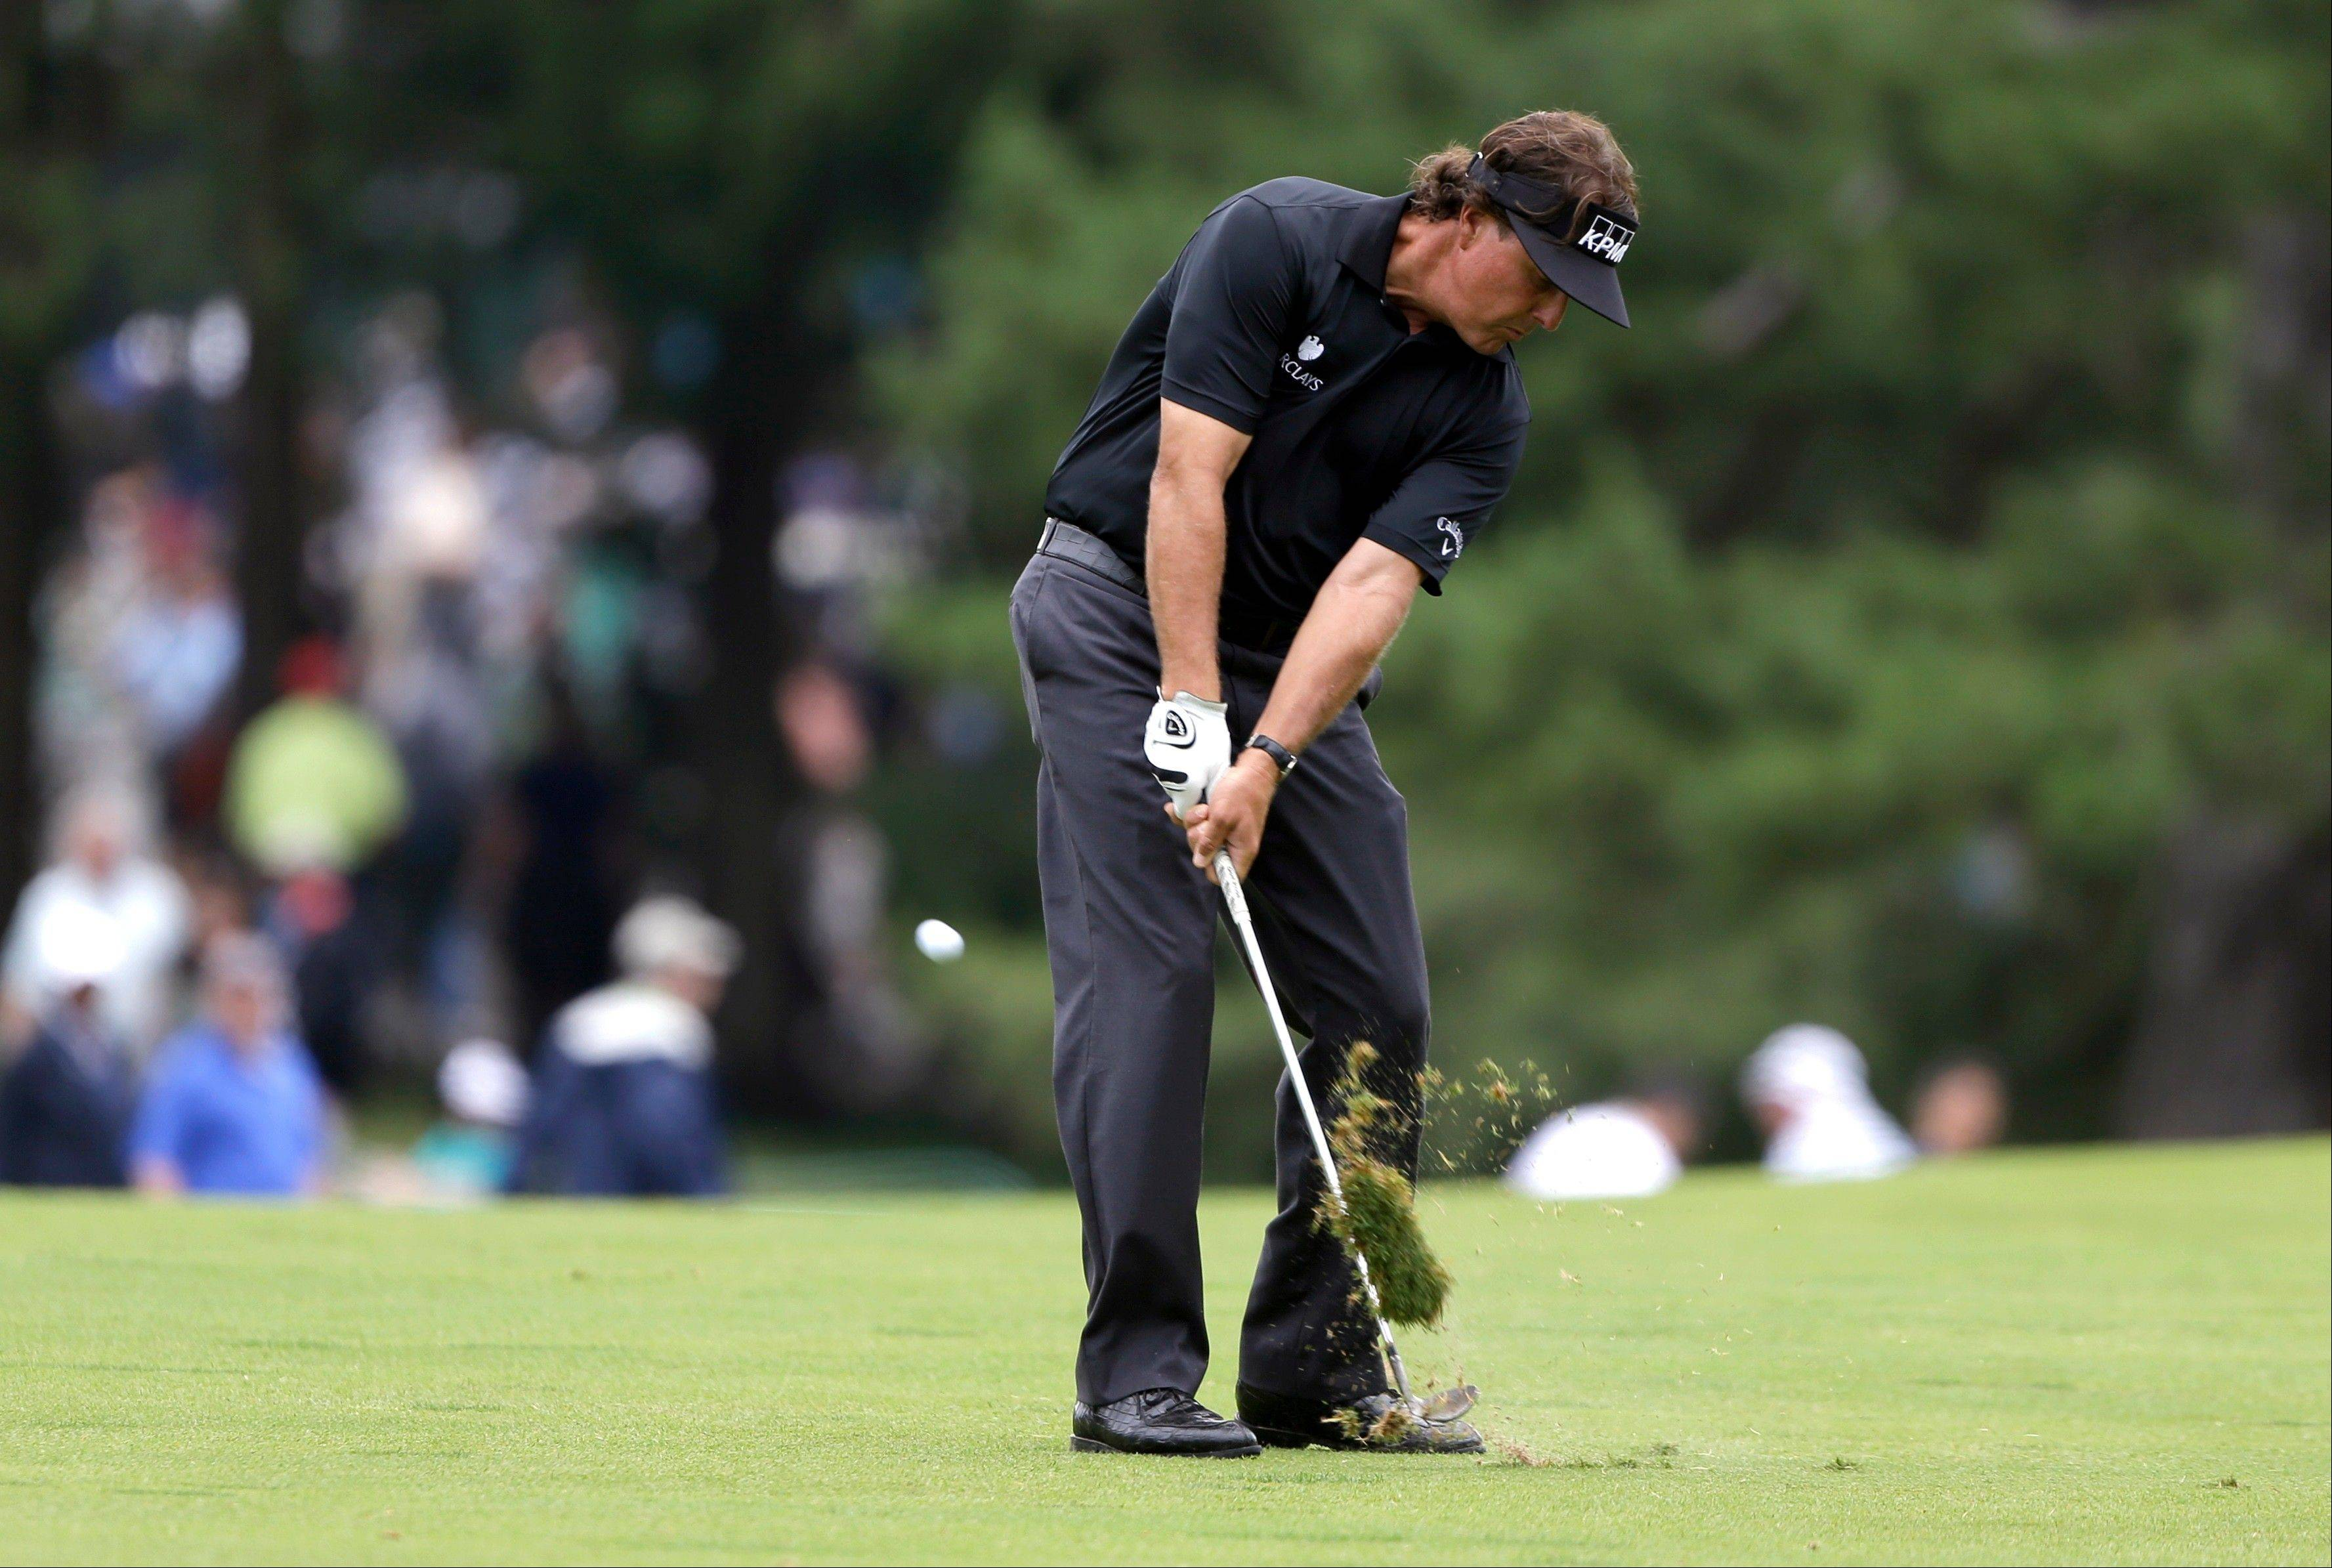 Phil Mickelson hits down the first fairway Thursday during the first round of the U.S. Open at Merion Golf Club in Ardmore, Pa.